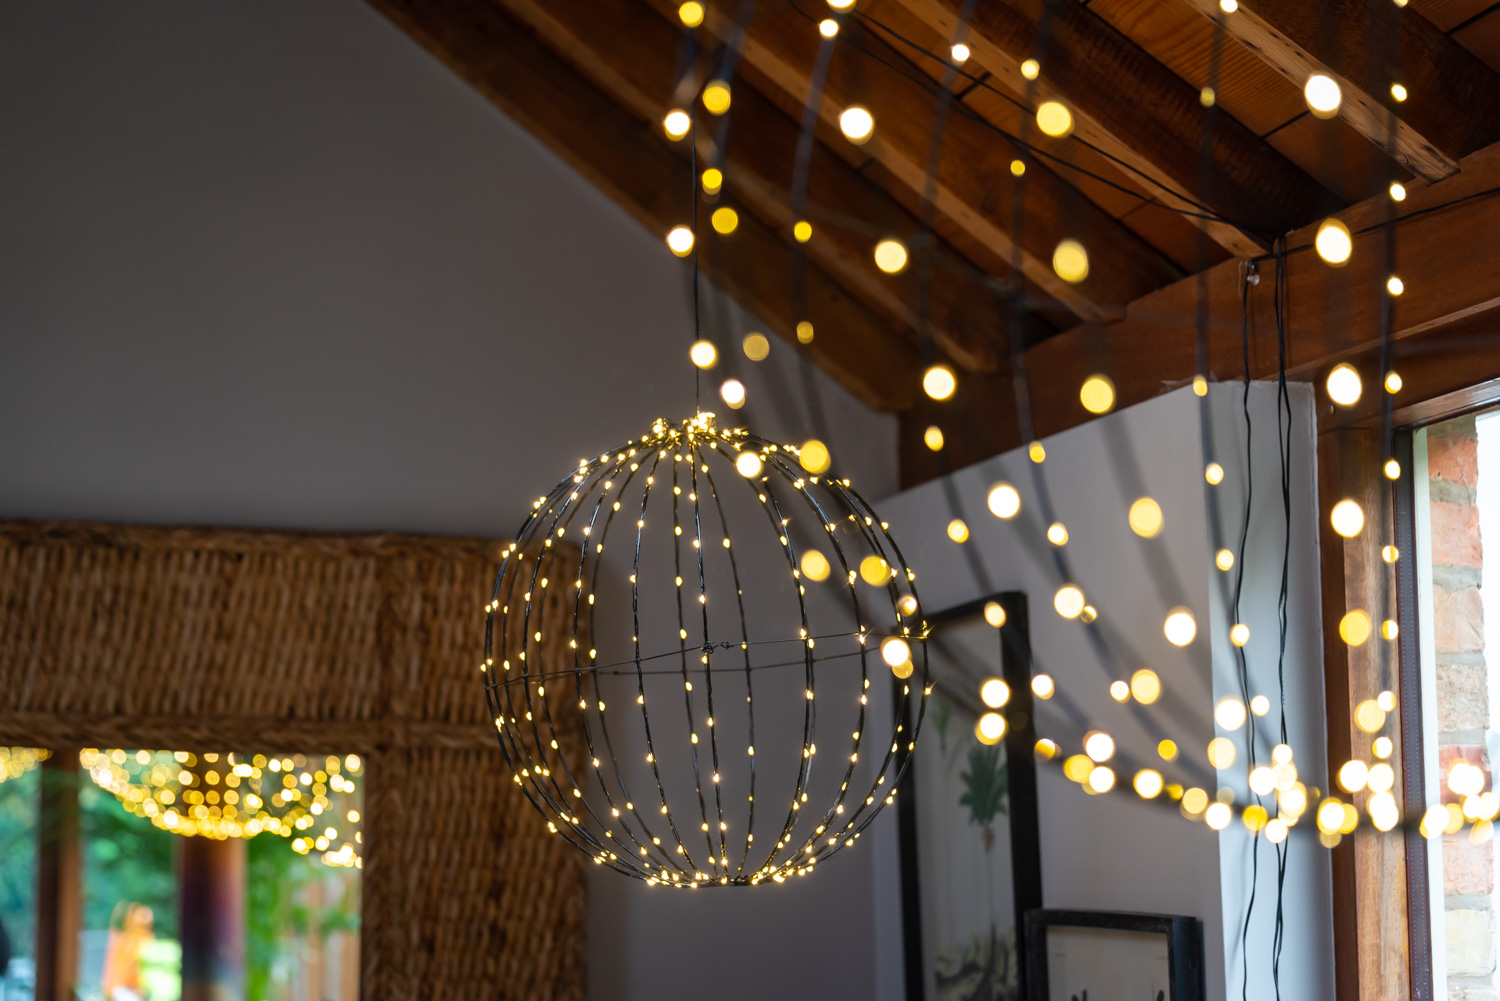 Luna Light Globes hanging from ceiling